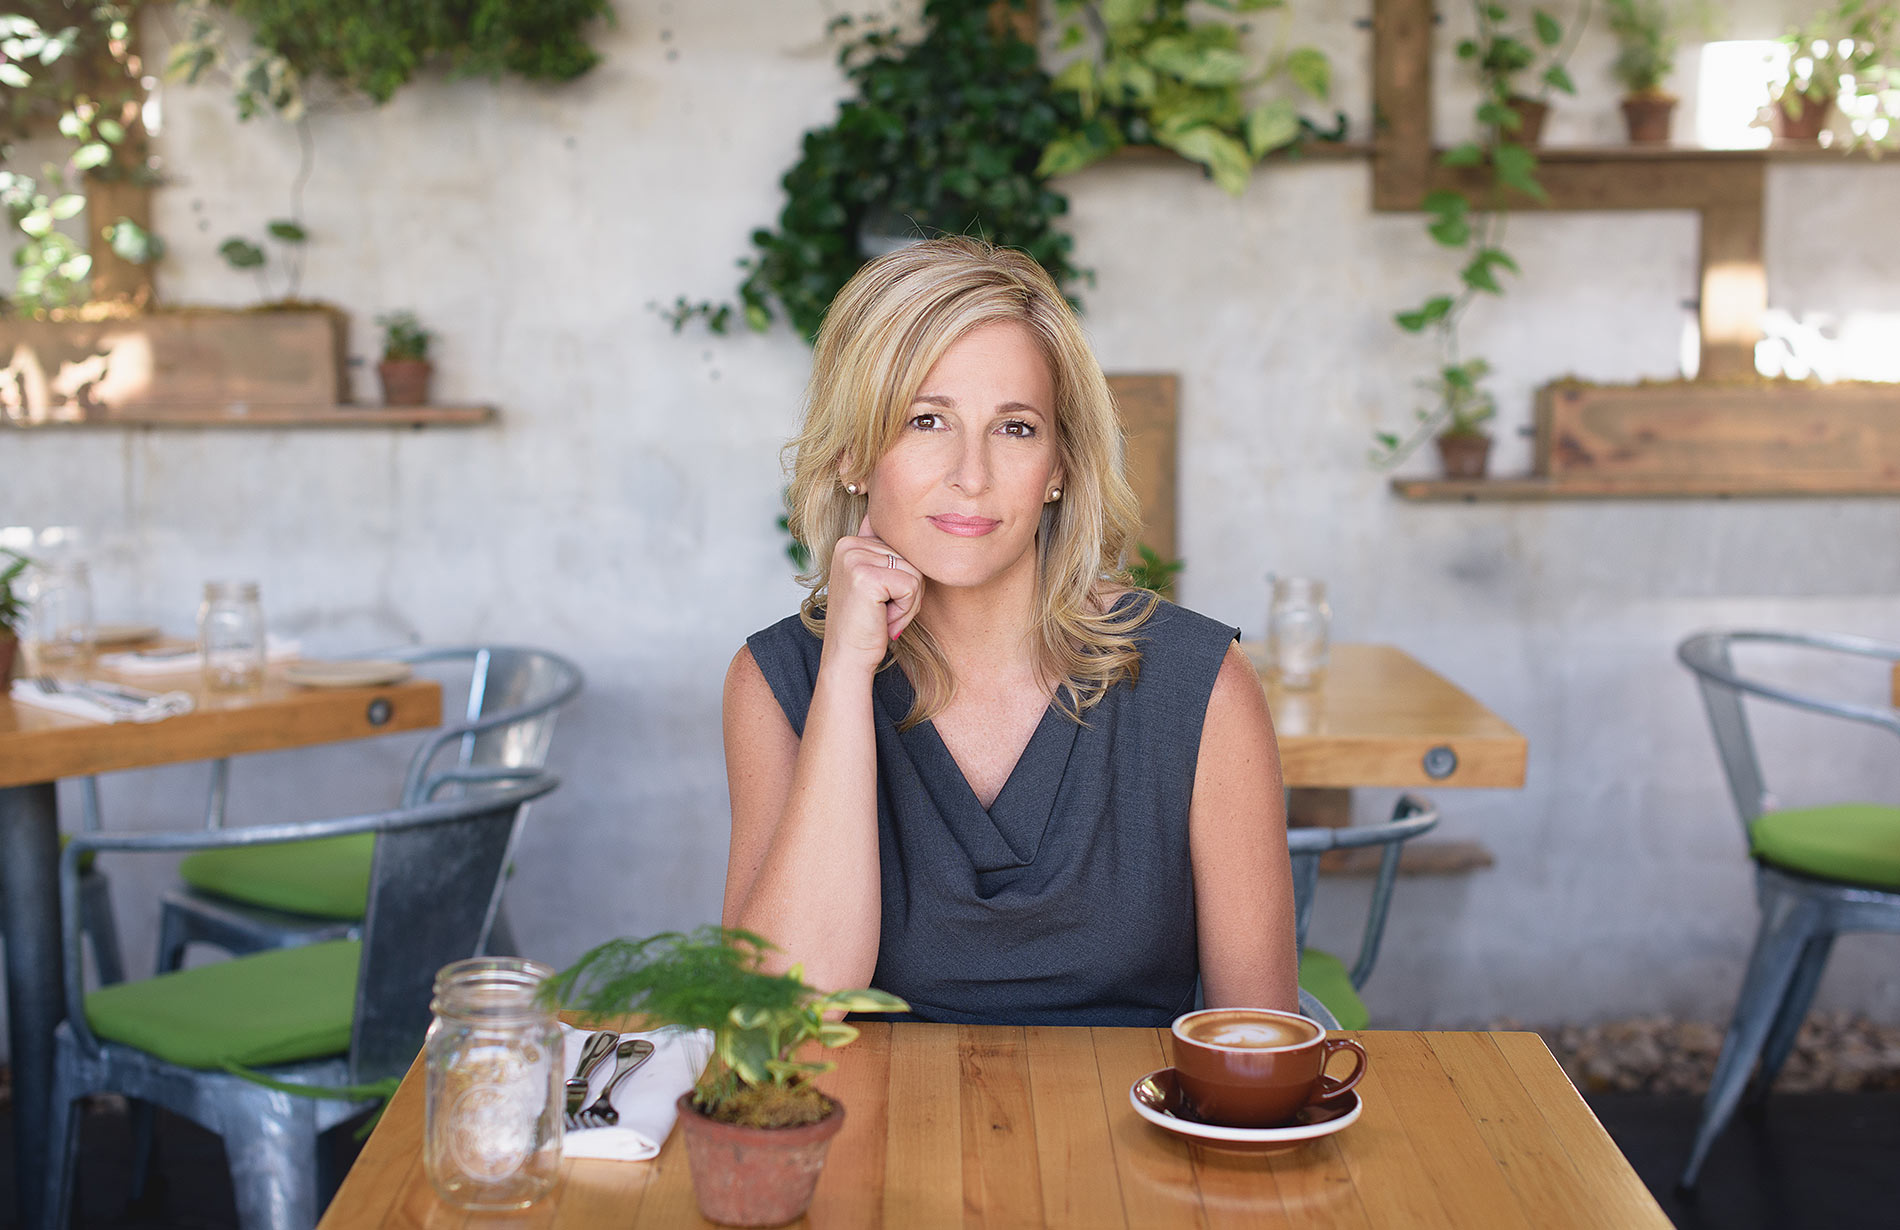 Image of a CEO at Terrain Cafe in Westport, Connecticut. Personal Branding portrait by N. Lalor Photography.